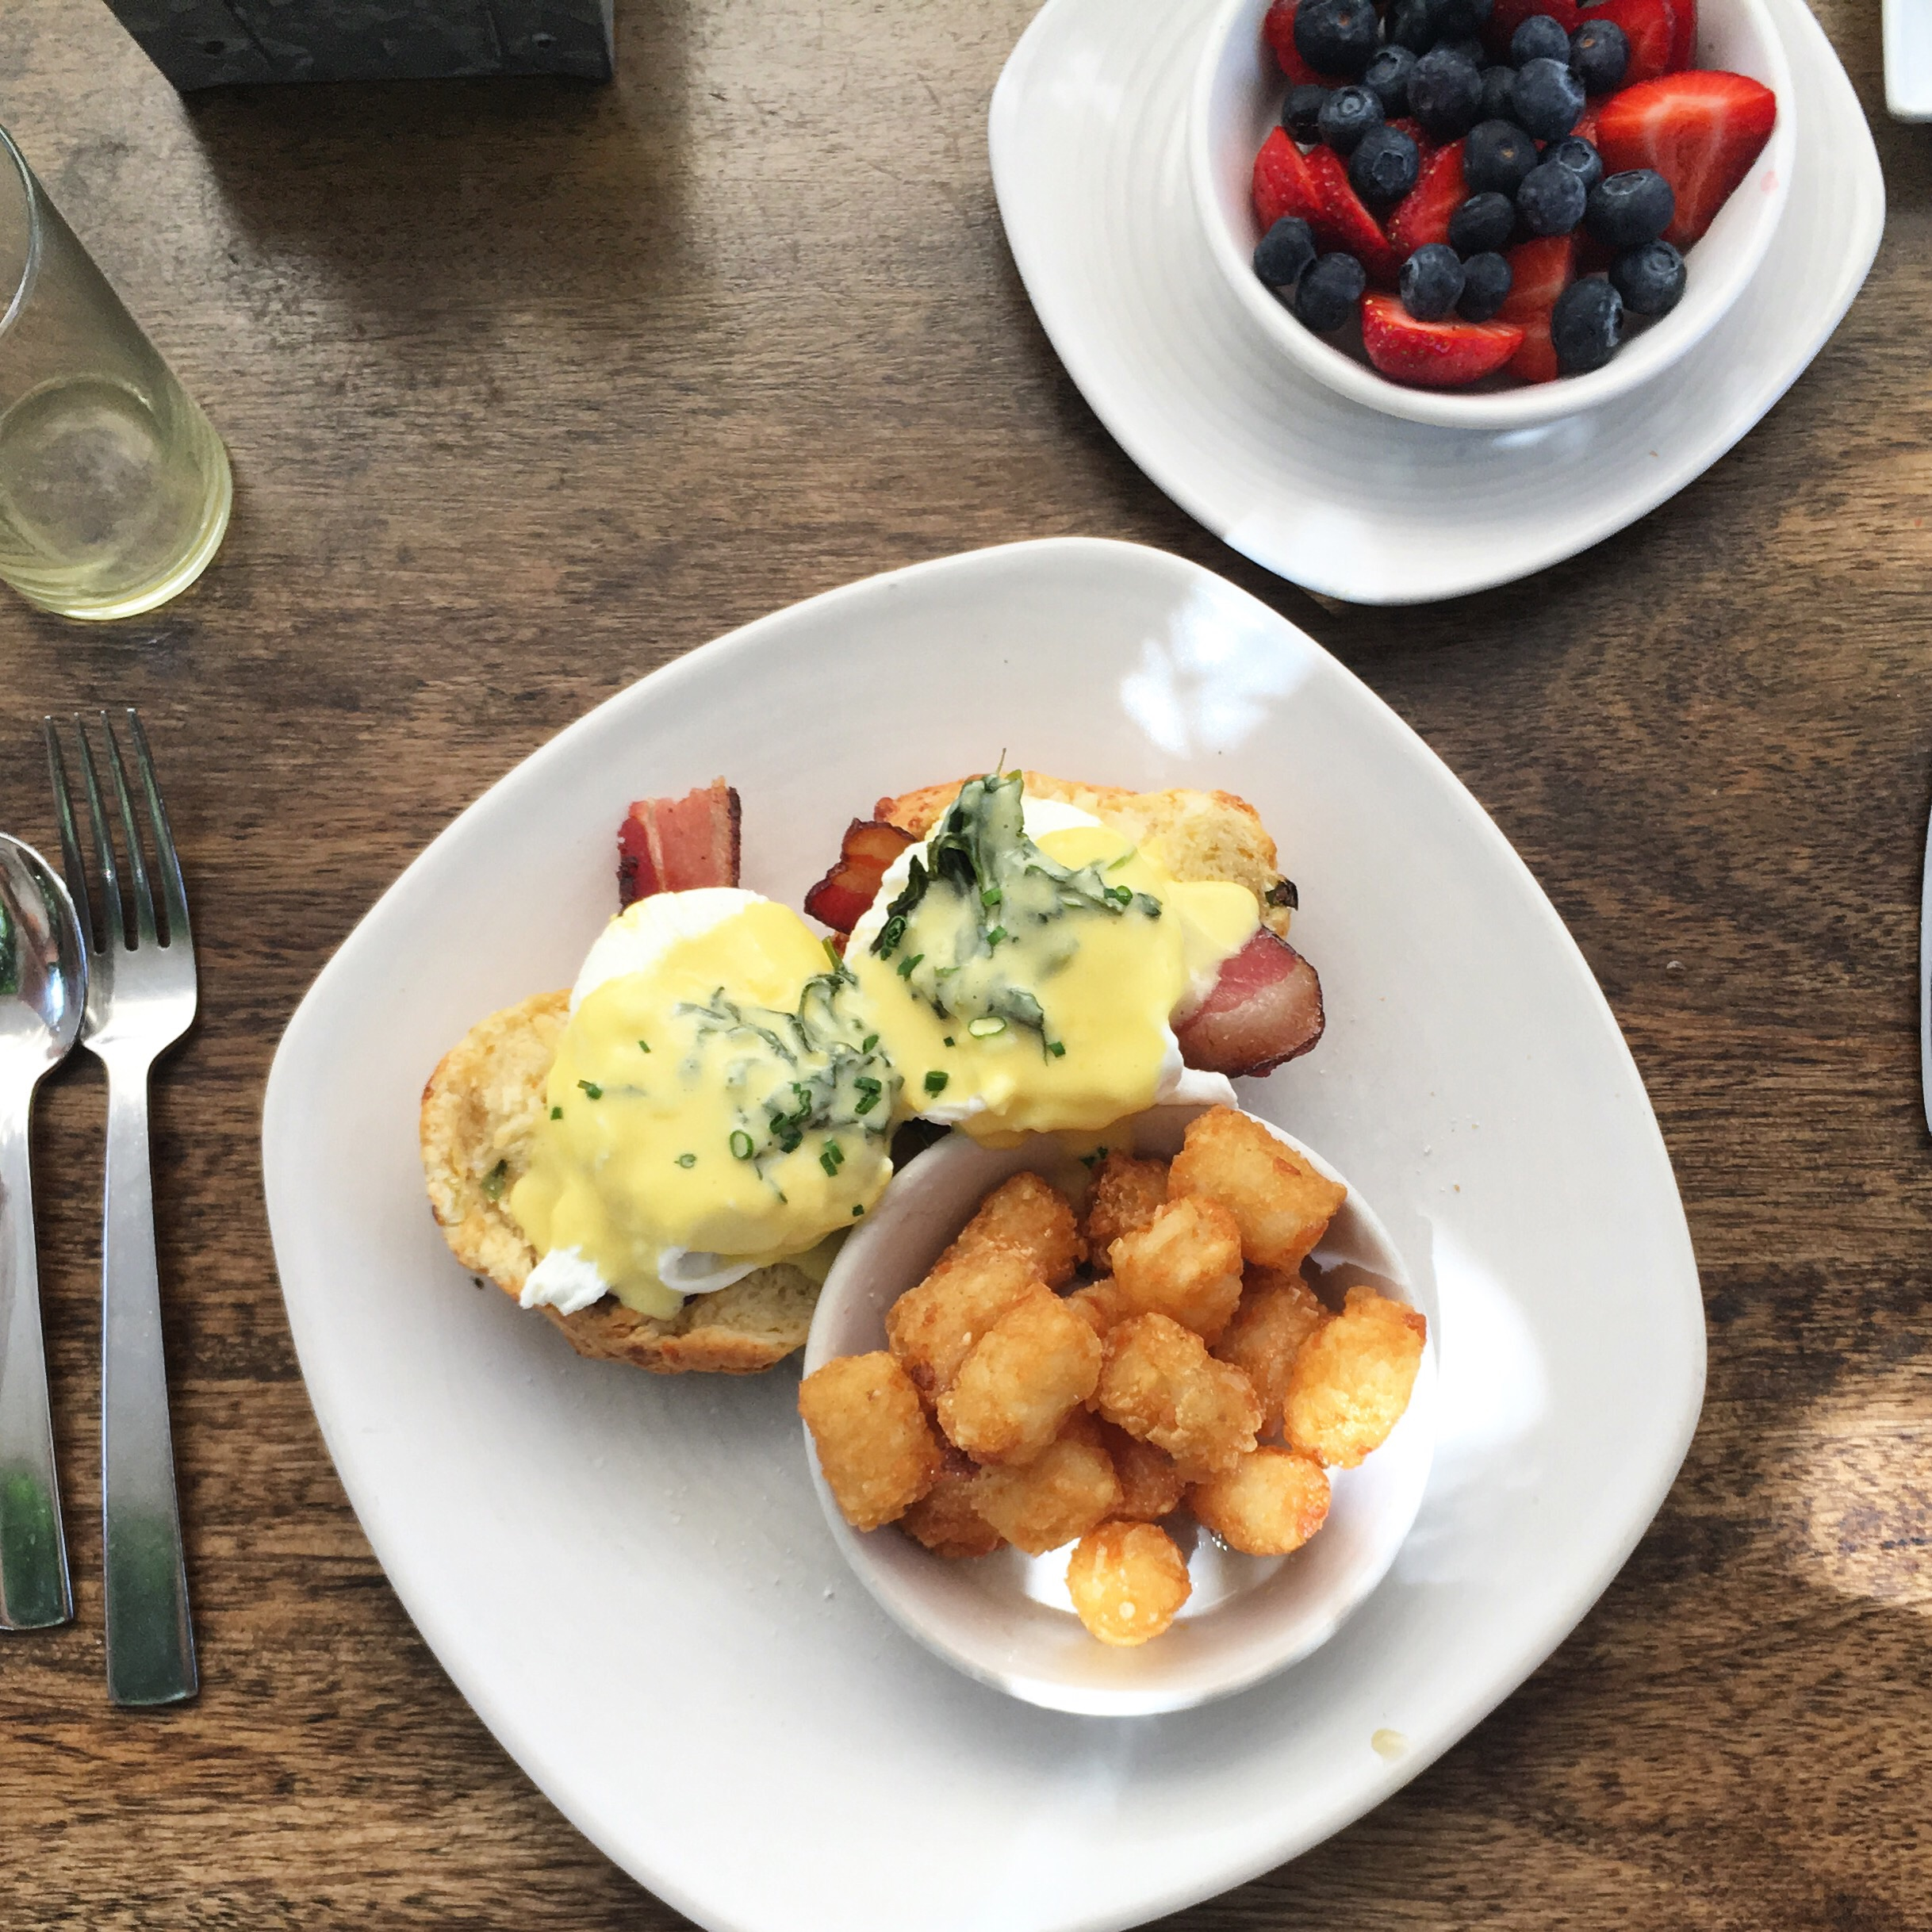 Cheekys Eggs Benedict with herbed hollandaise on a homemade scone, complimented by jalapeño tater tots